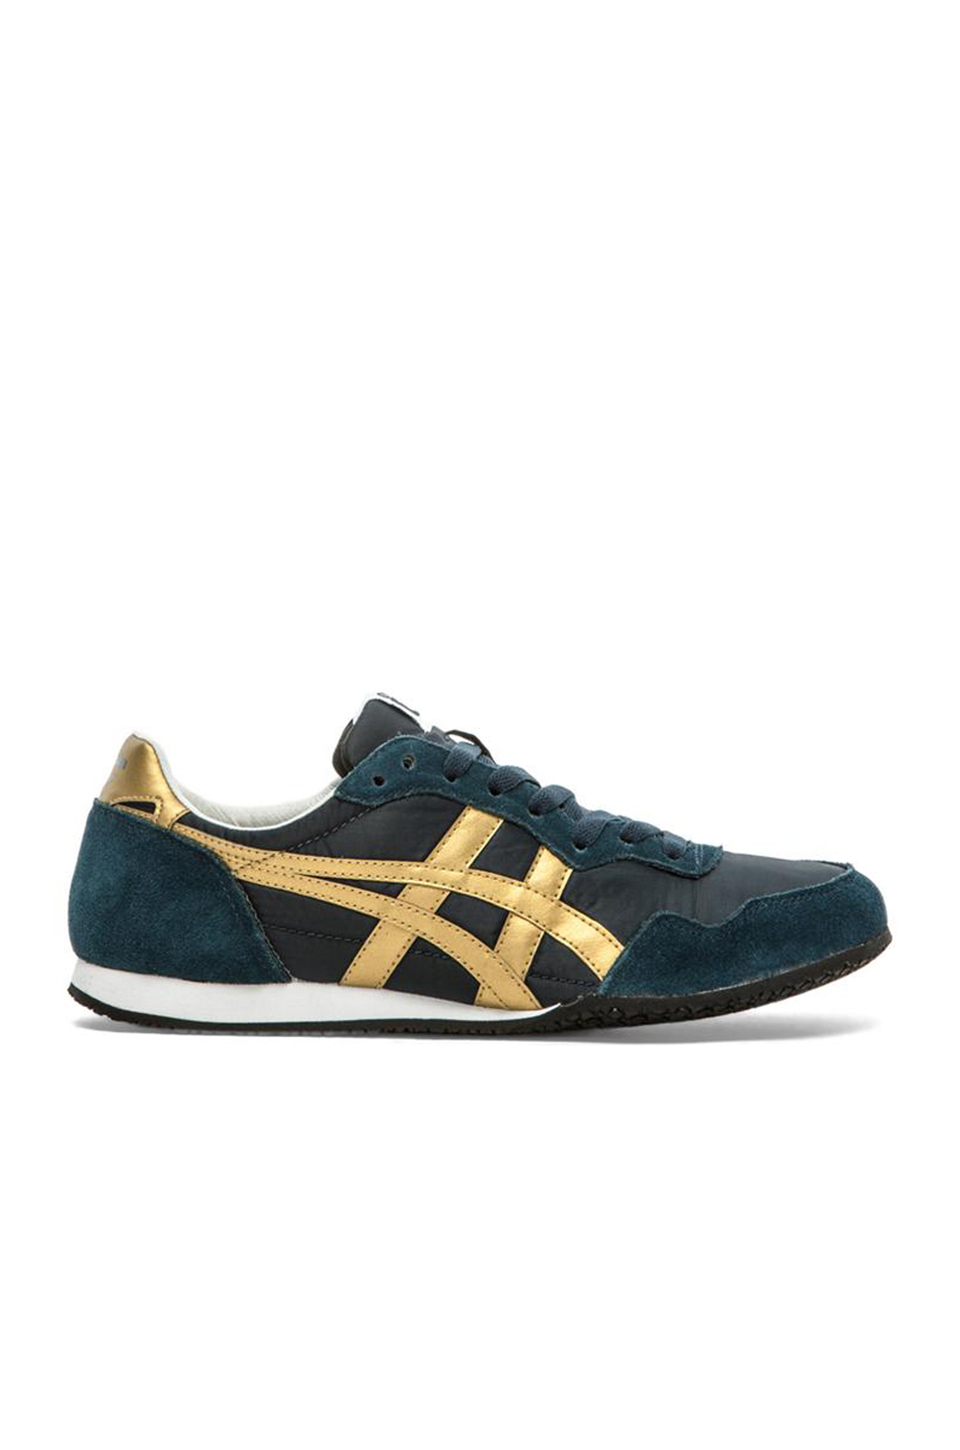 reputable site 46f0d a8ac9 Onitsuka Tiger Serrano In Navy & Gold